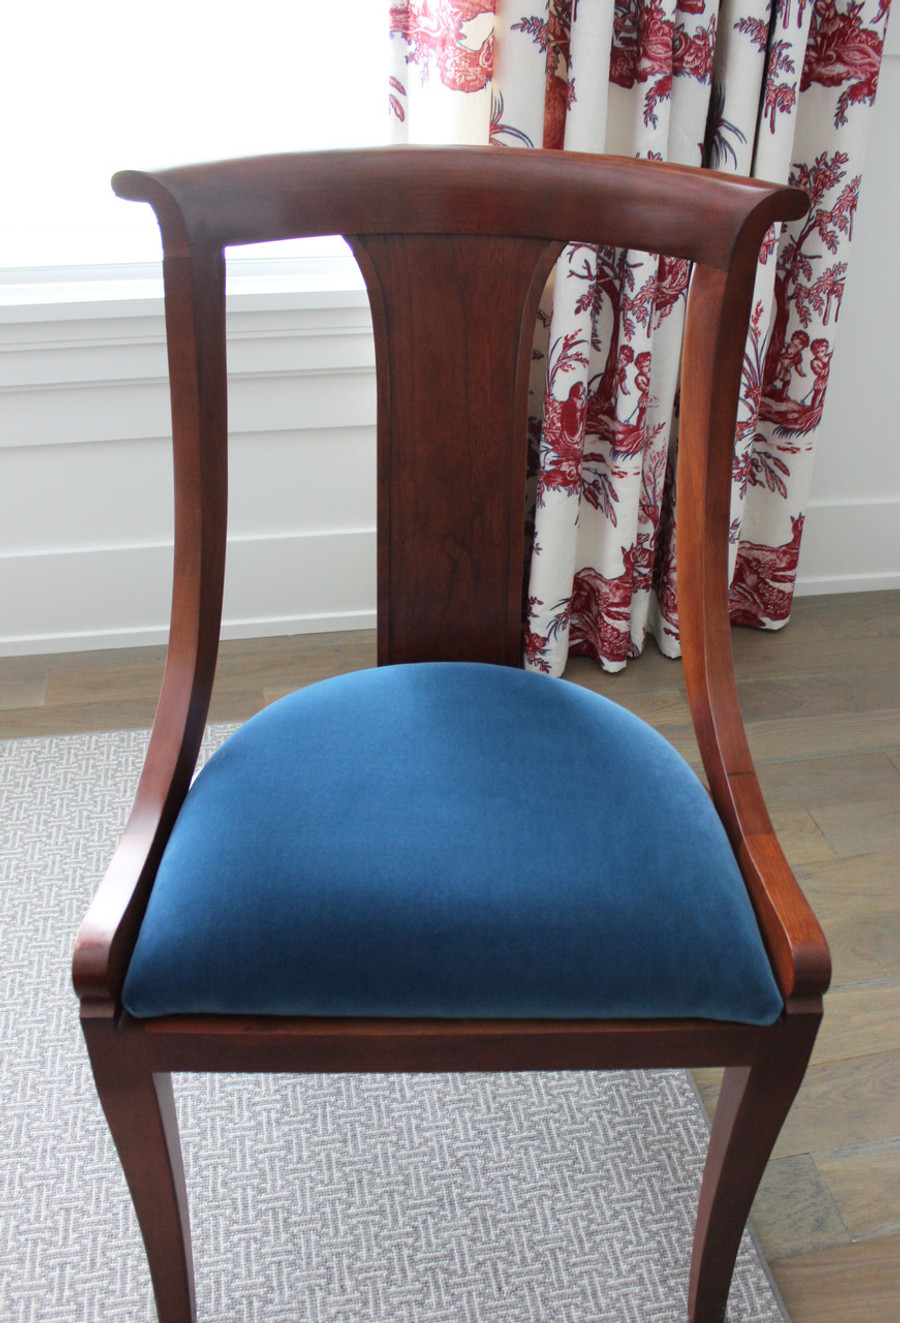 Dining Room Chairs covered in Ralph Lauren Moleskin Velvet in Prussian Blue.  Drapes are Alessandra Branca Continenti in Rouge/Prussian.  Prussian Blue Velvet is a perfect match to the Prussian Blue outline in the drapes.